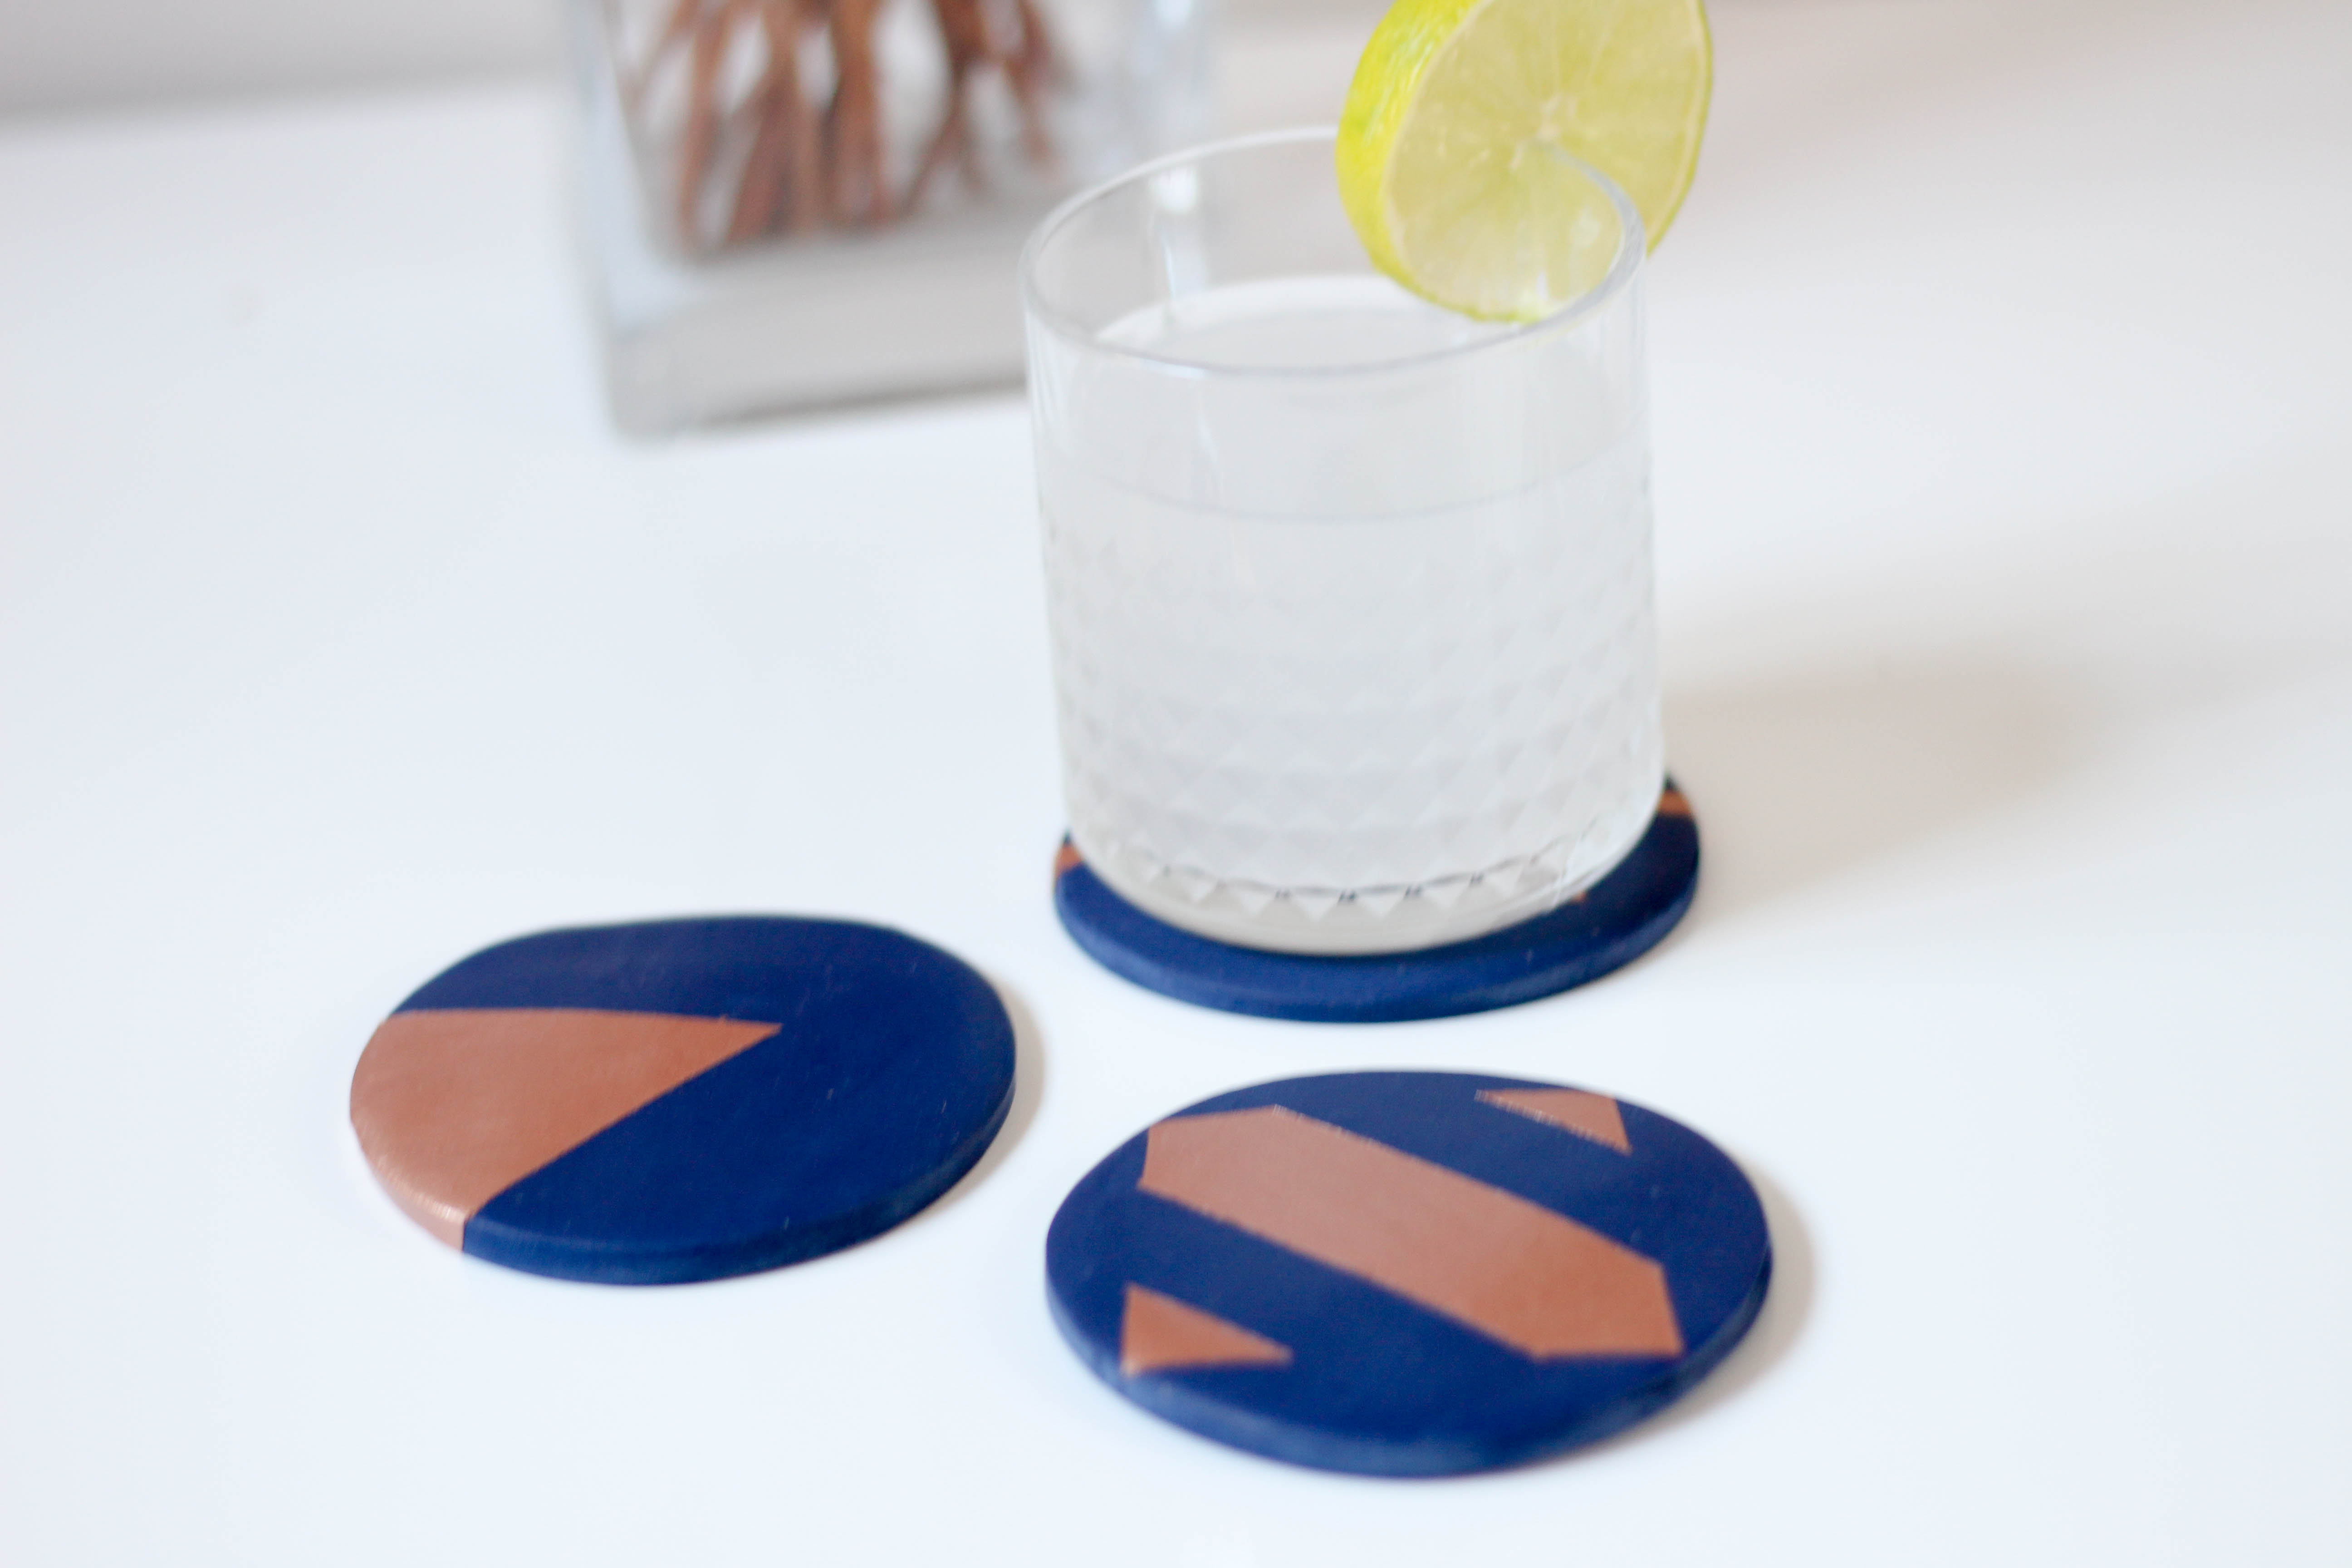 Clay coaster diy